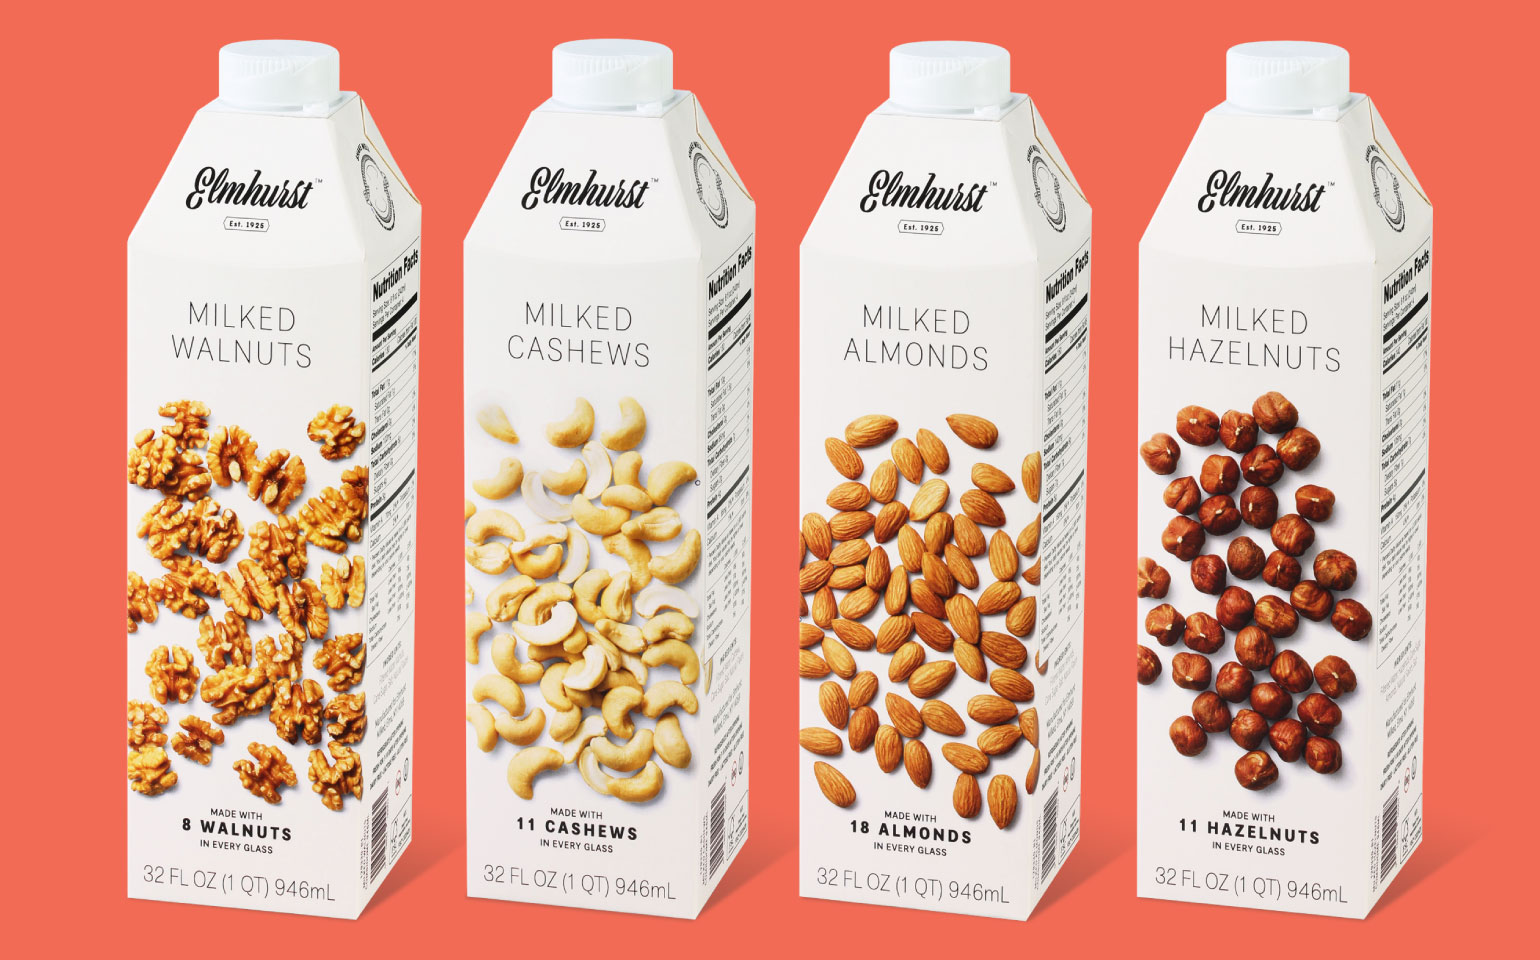 Elmhurst Dairy switched to producing plant-based milk after 92 years producing cows milk.